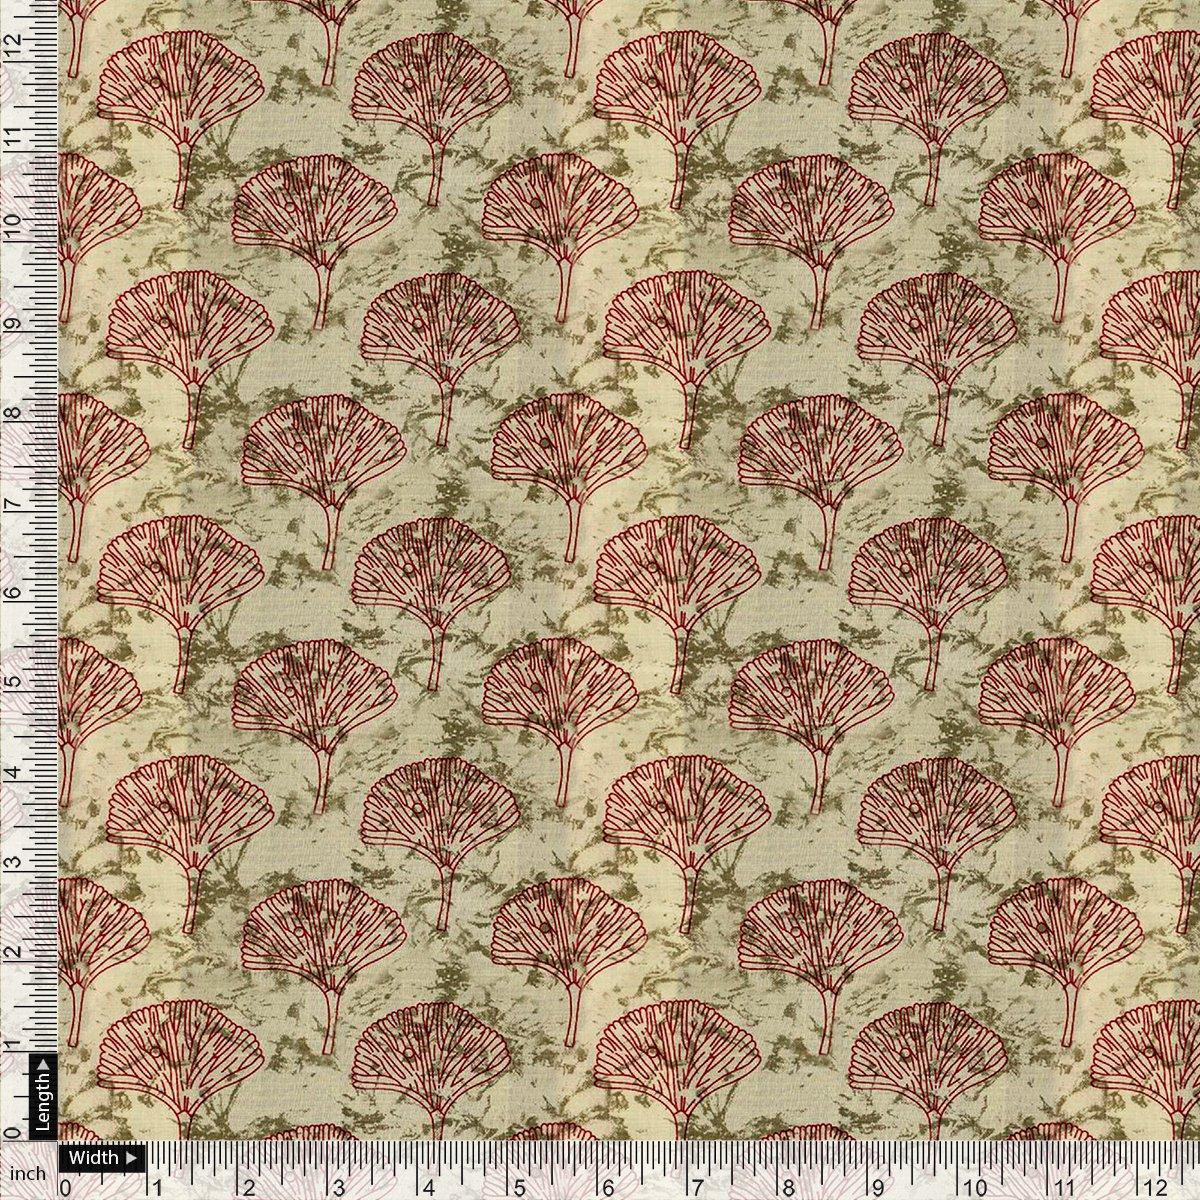 Flower Block Allover Digital Printed Fabric - Upada Silk